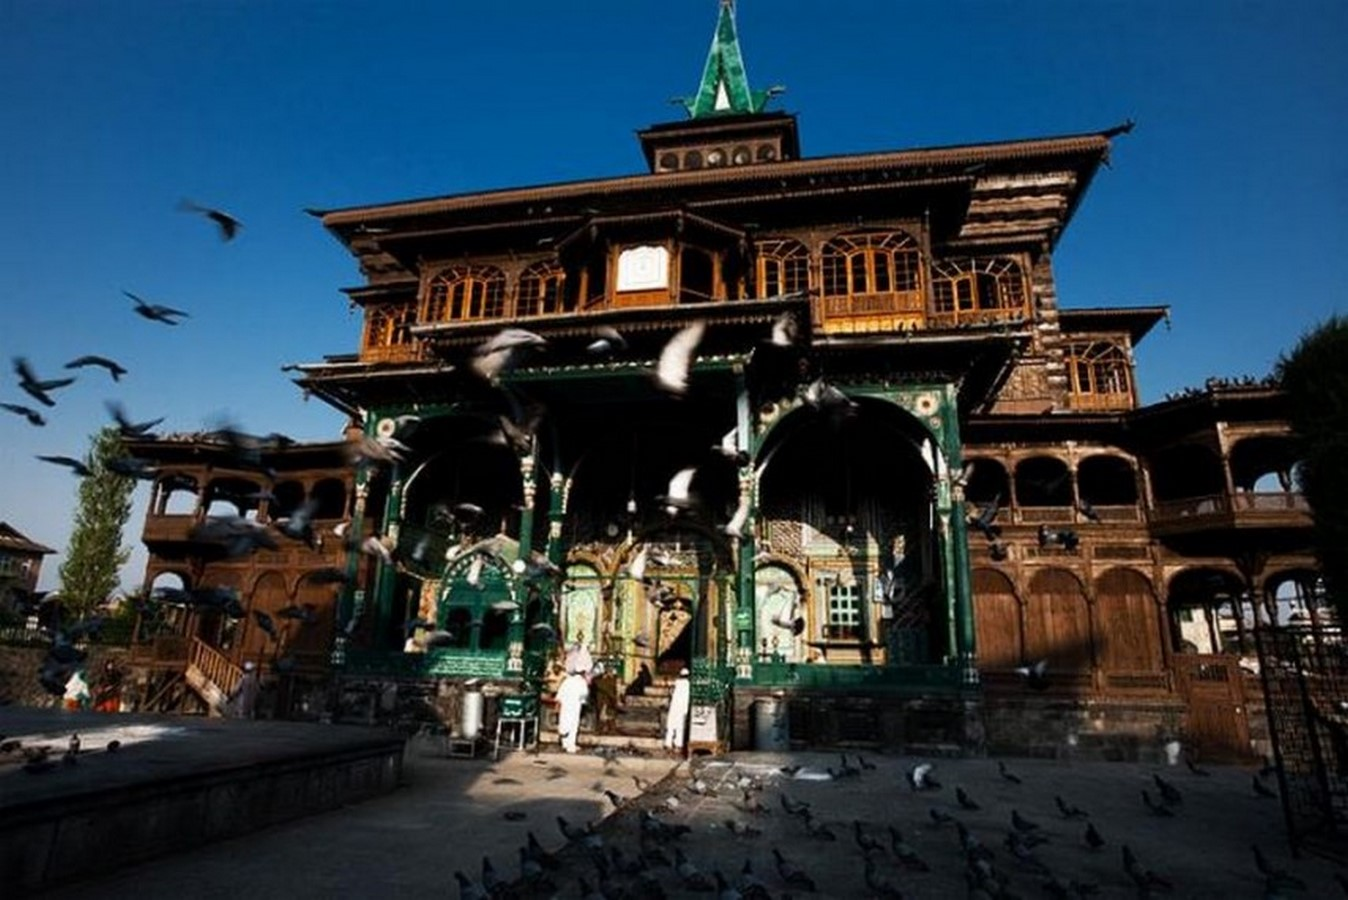 Architecture of Kashmir- Beauty amidst chaos - Sheet7